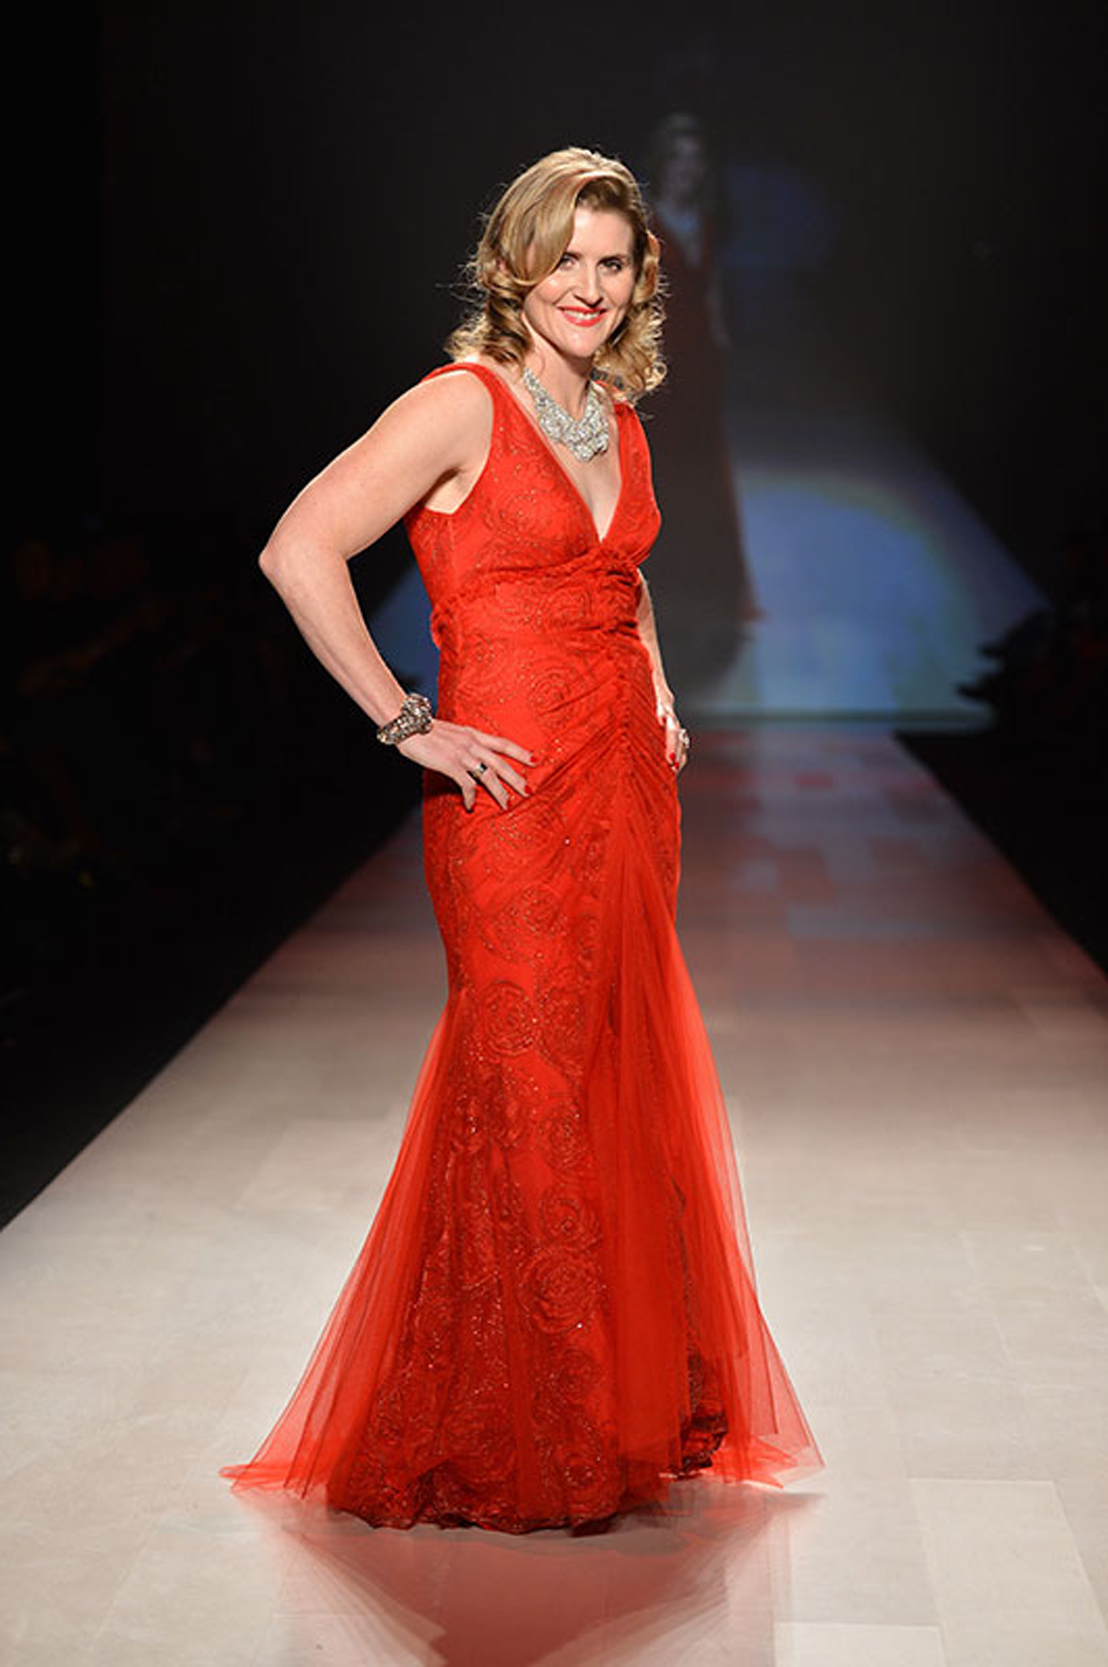 Hayley Wickenheiser in our Eternity gown in red for the Heart and Stroke Foundation Fashion Show